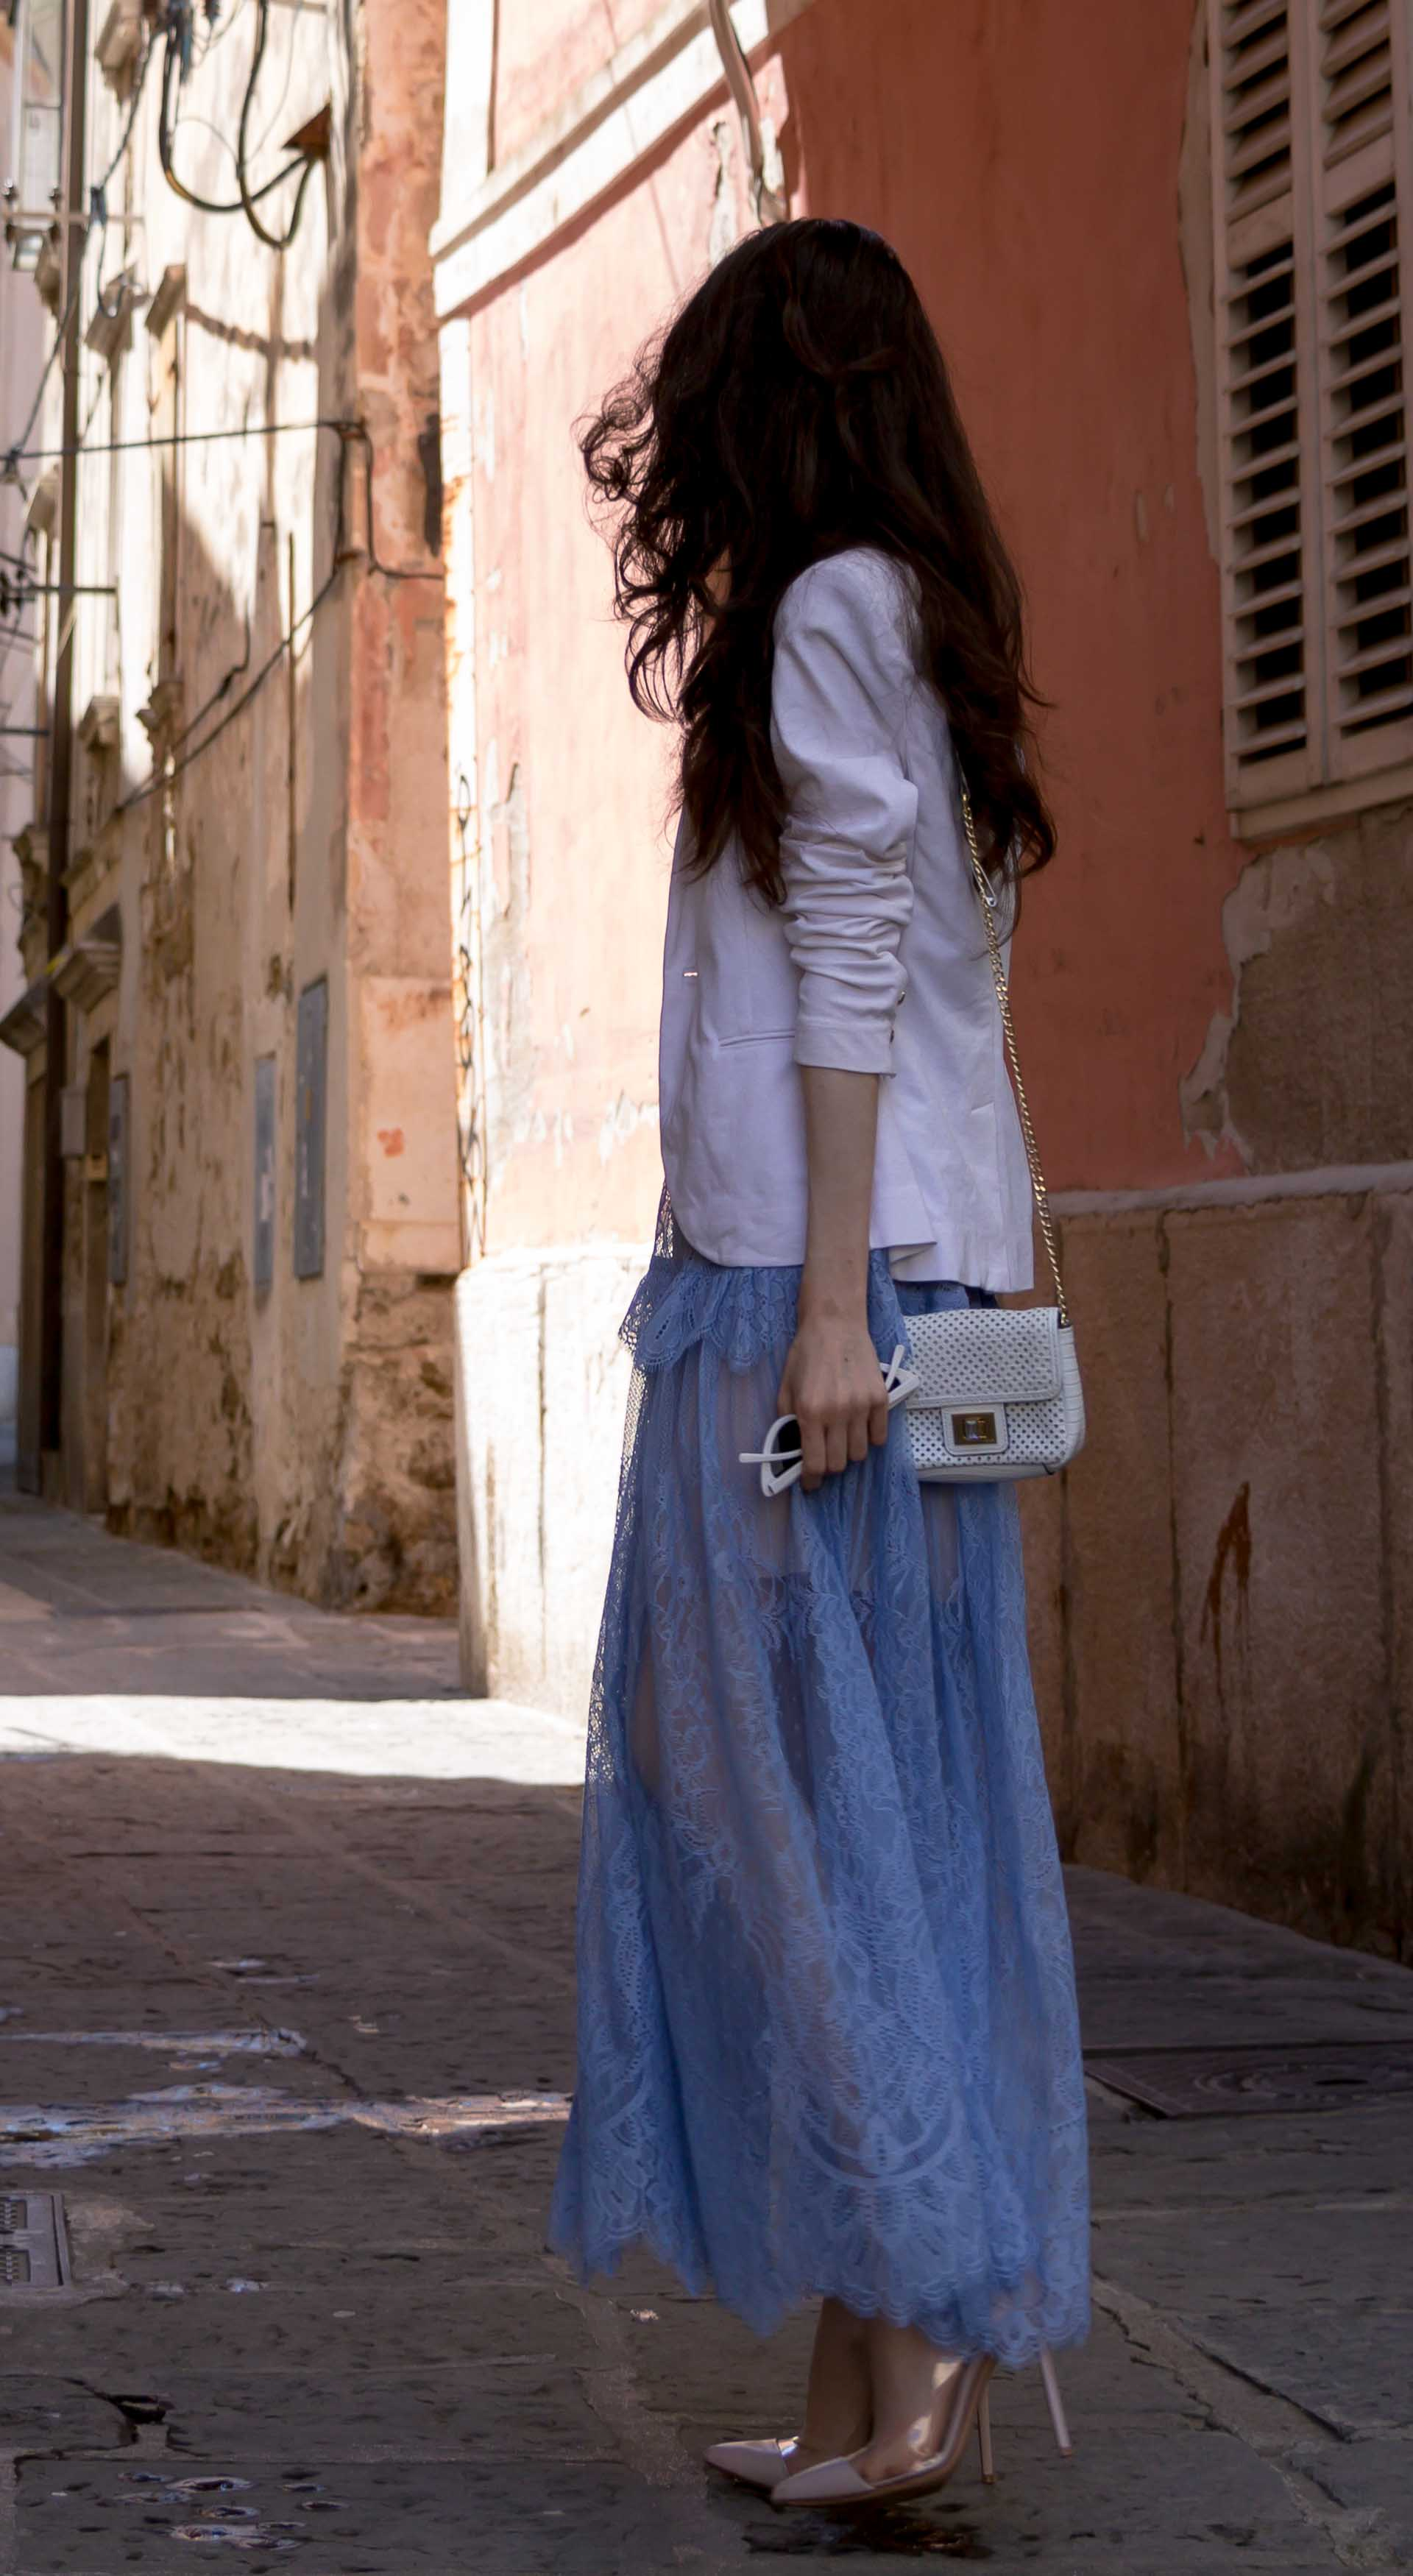 Veronika Lipar Fashion Blogger of Brunette from Wall Street dressed in Self-Portrait blue lace midi dress, white single button blazer, blush Gianvito Rossi plexi pumps, white shoulder bag, Lespecs white cat eye sunglasses while walking in a hidden alley in Italian village